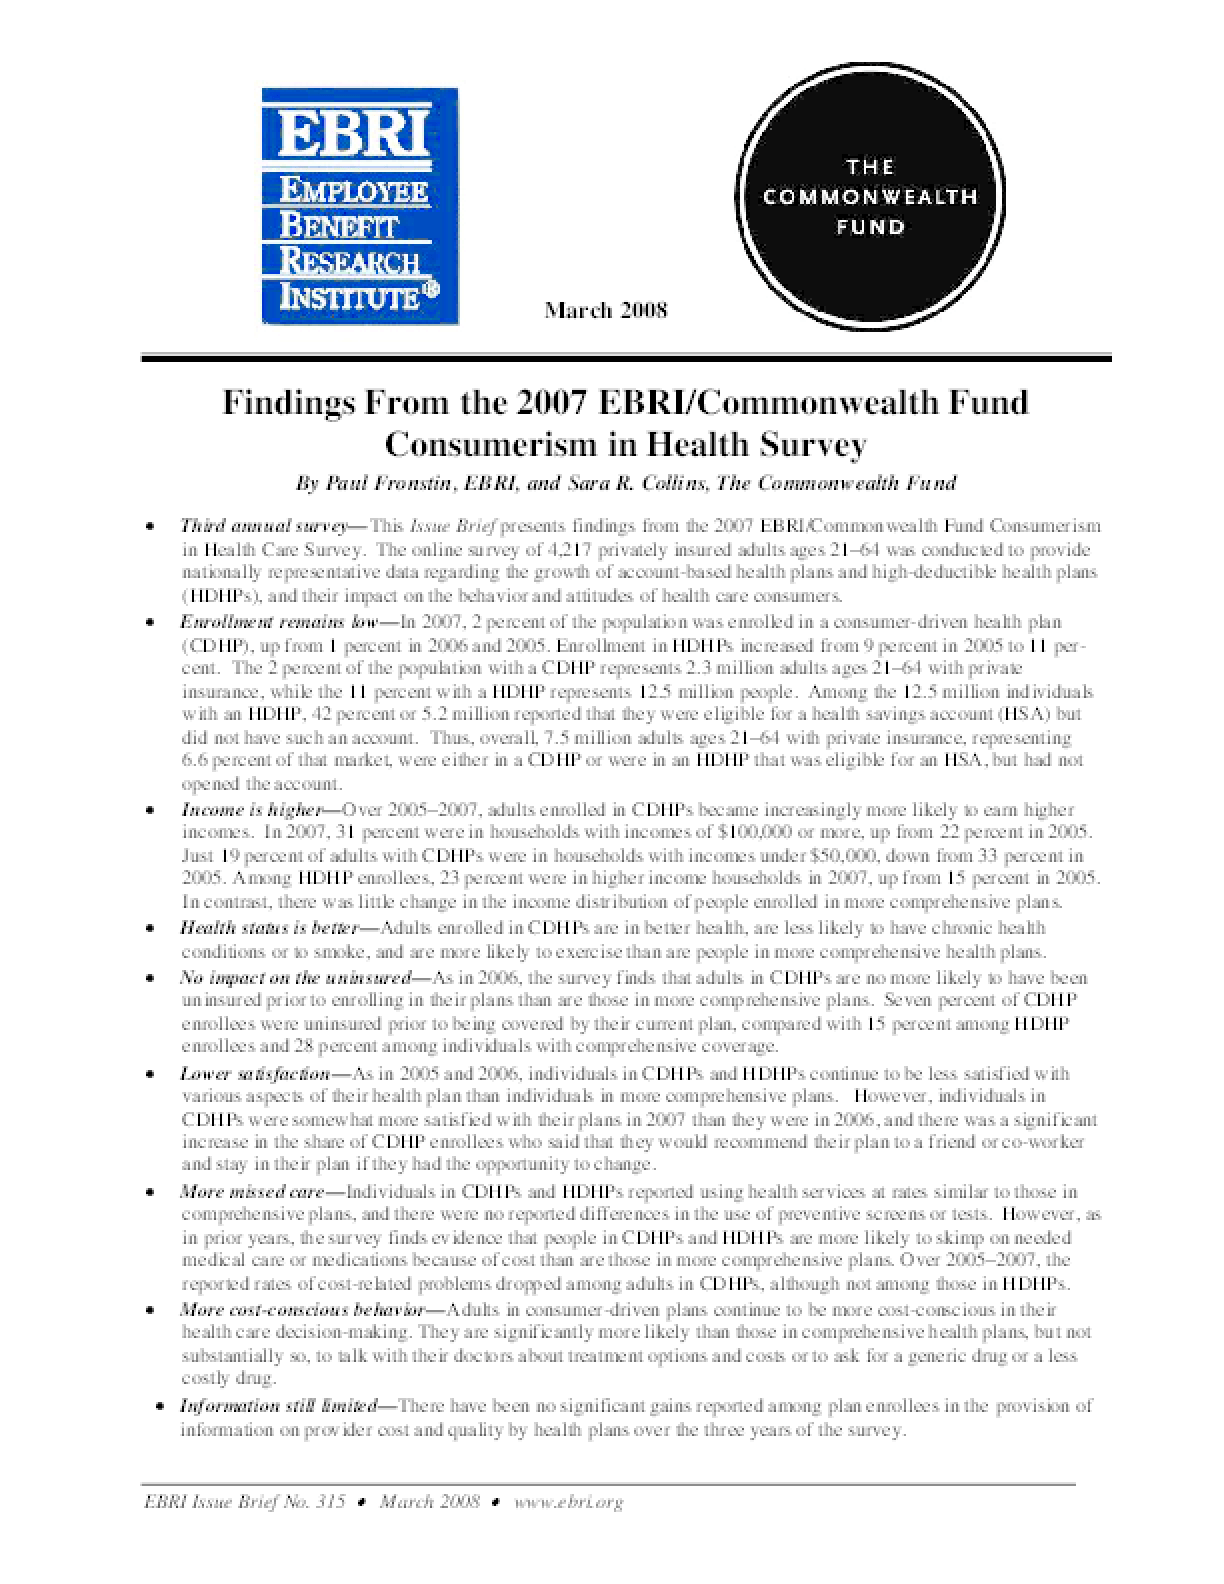 Findings From the 2007 EBRI/Commonwealth Fund Consumerism in Health Survey